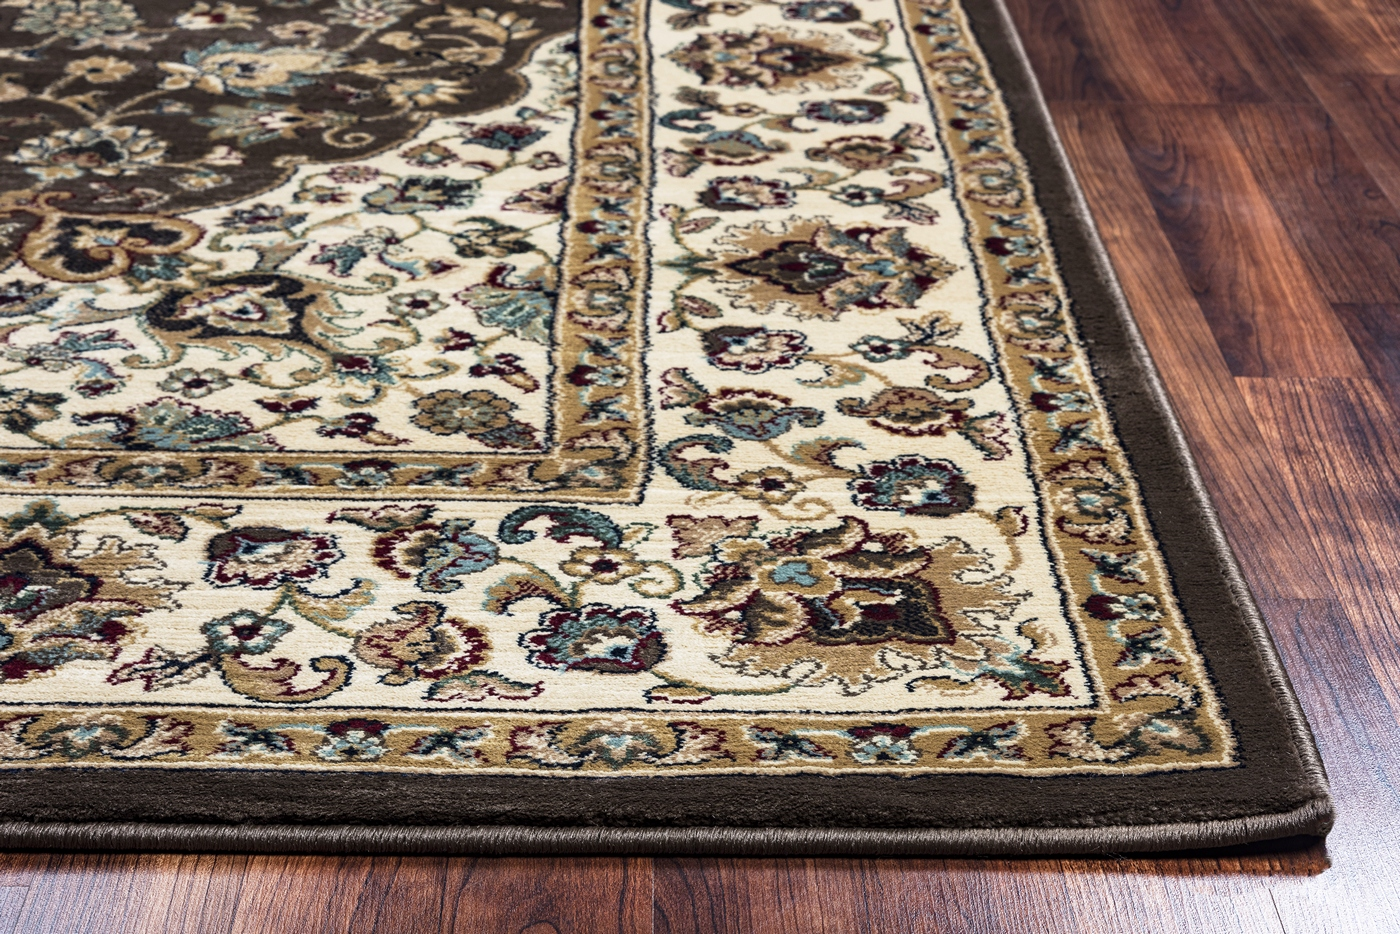 chateau classic border area rug in brown ivory 9 39 10 x 12 39 6. Black Bedroom Furniture Sets. Home Design Ideas